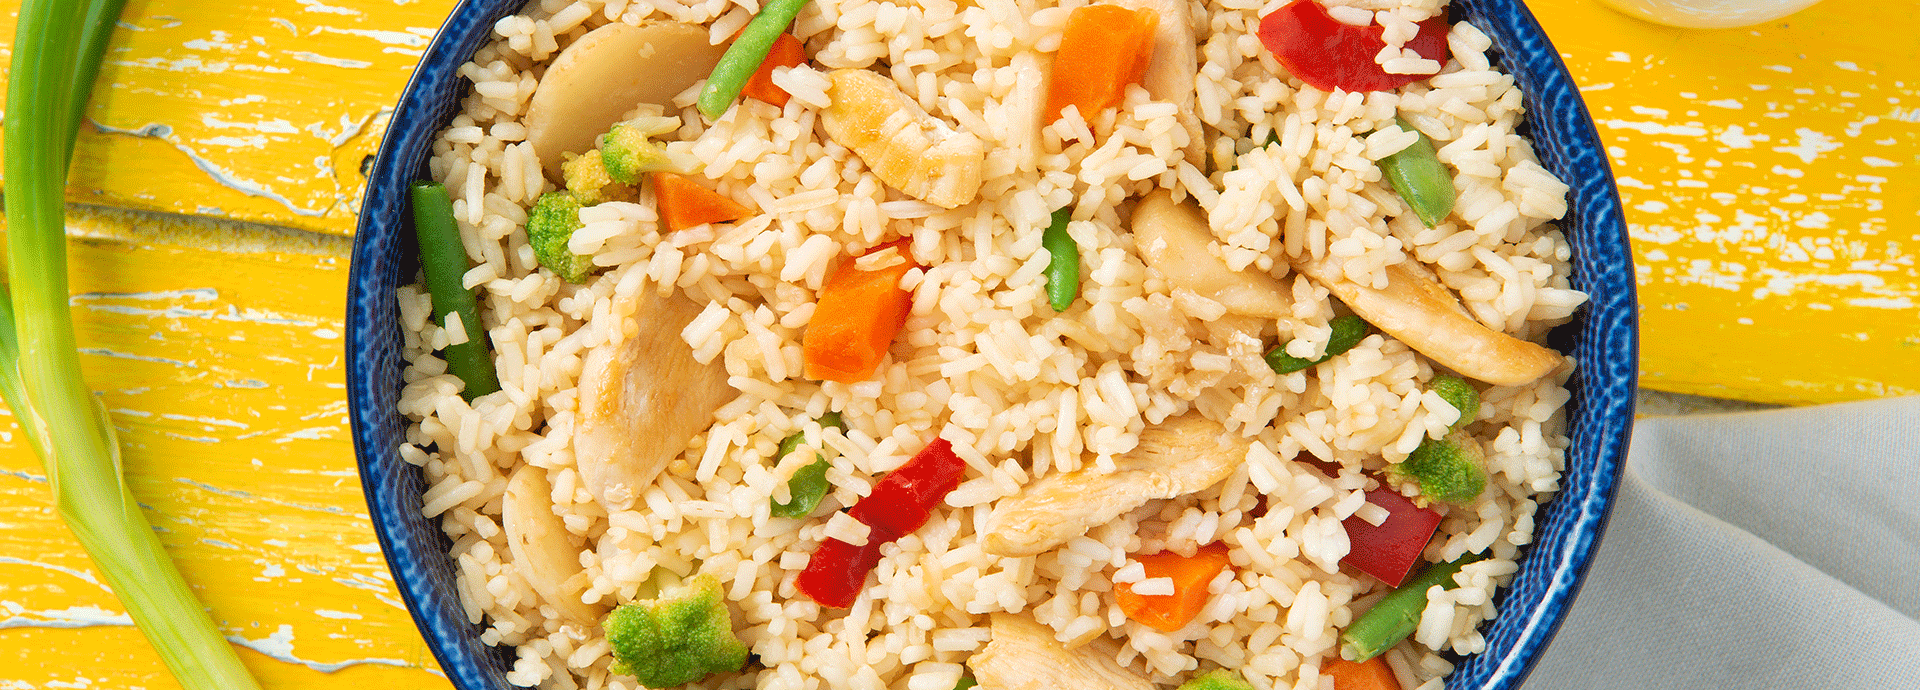 Quick Chicken Stir Fry With Vegetables Minute Rice